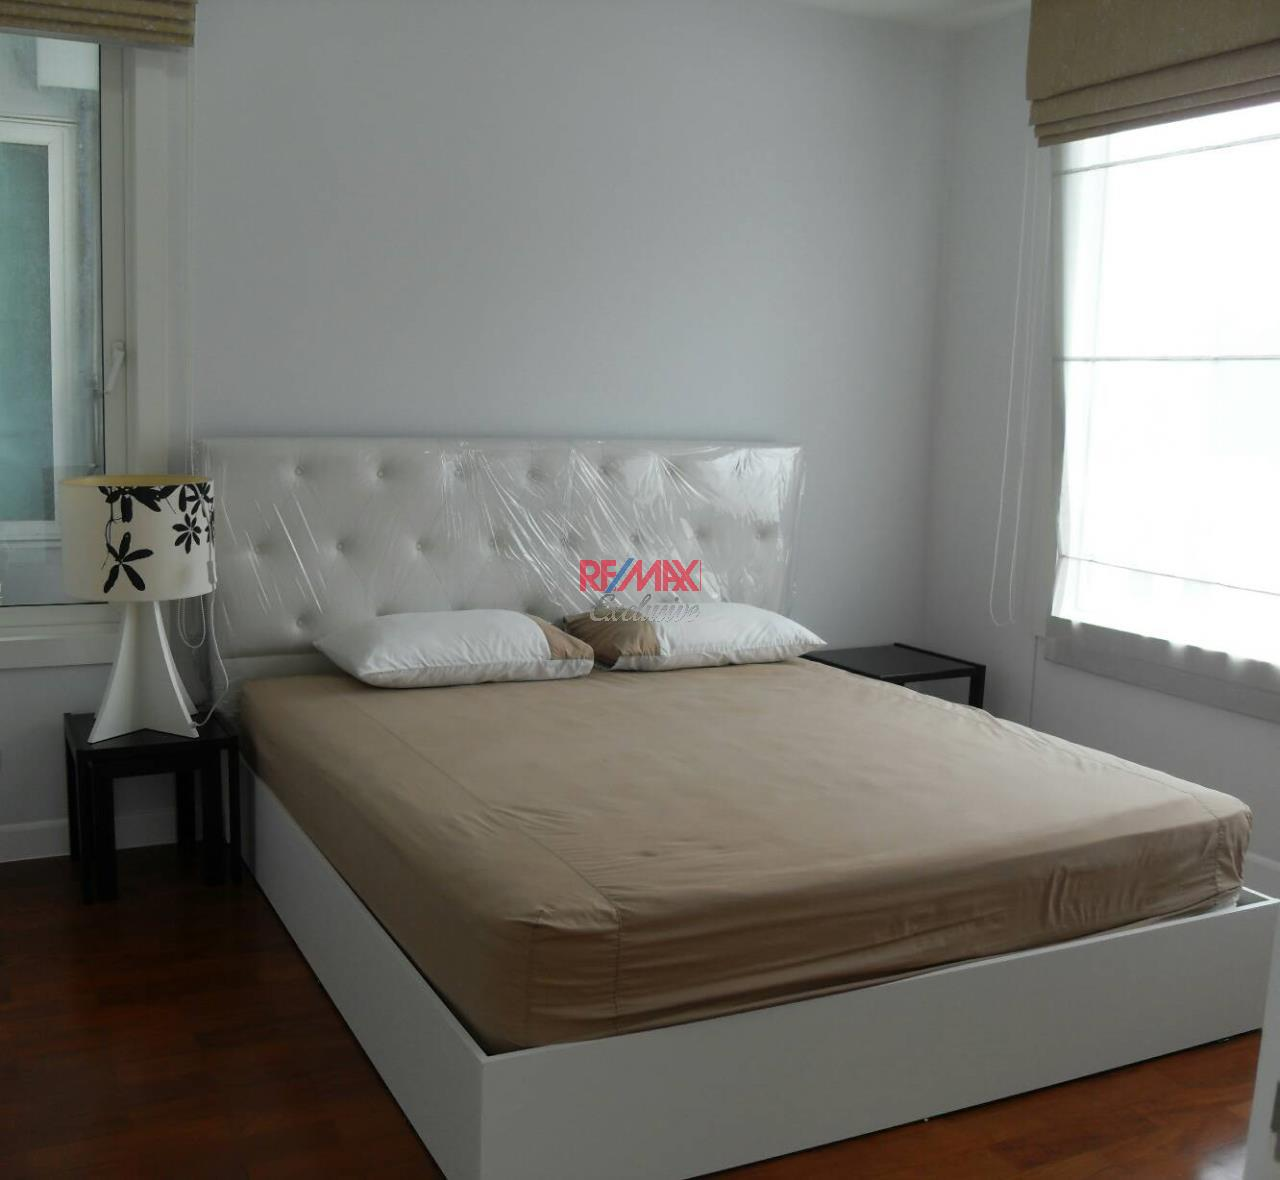 RE/MAX Exclusive Agency's SIRI RESIDENCE, Sukhumvit 24, 1 Bedroom, 60 Sqm. Fully-Furnished, for RENT!!  3